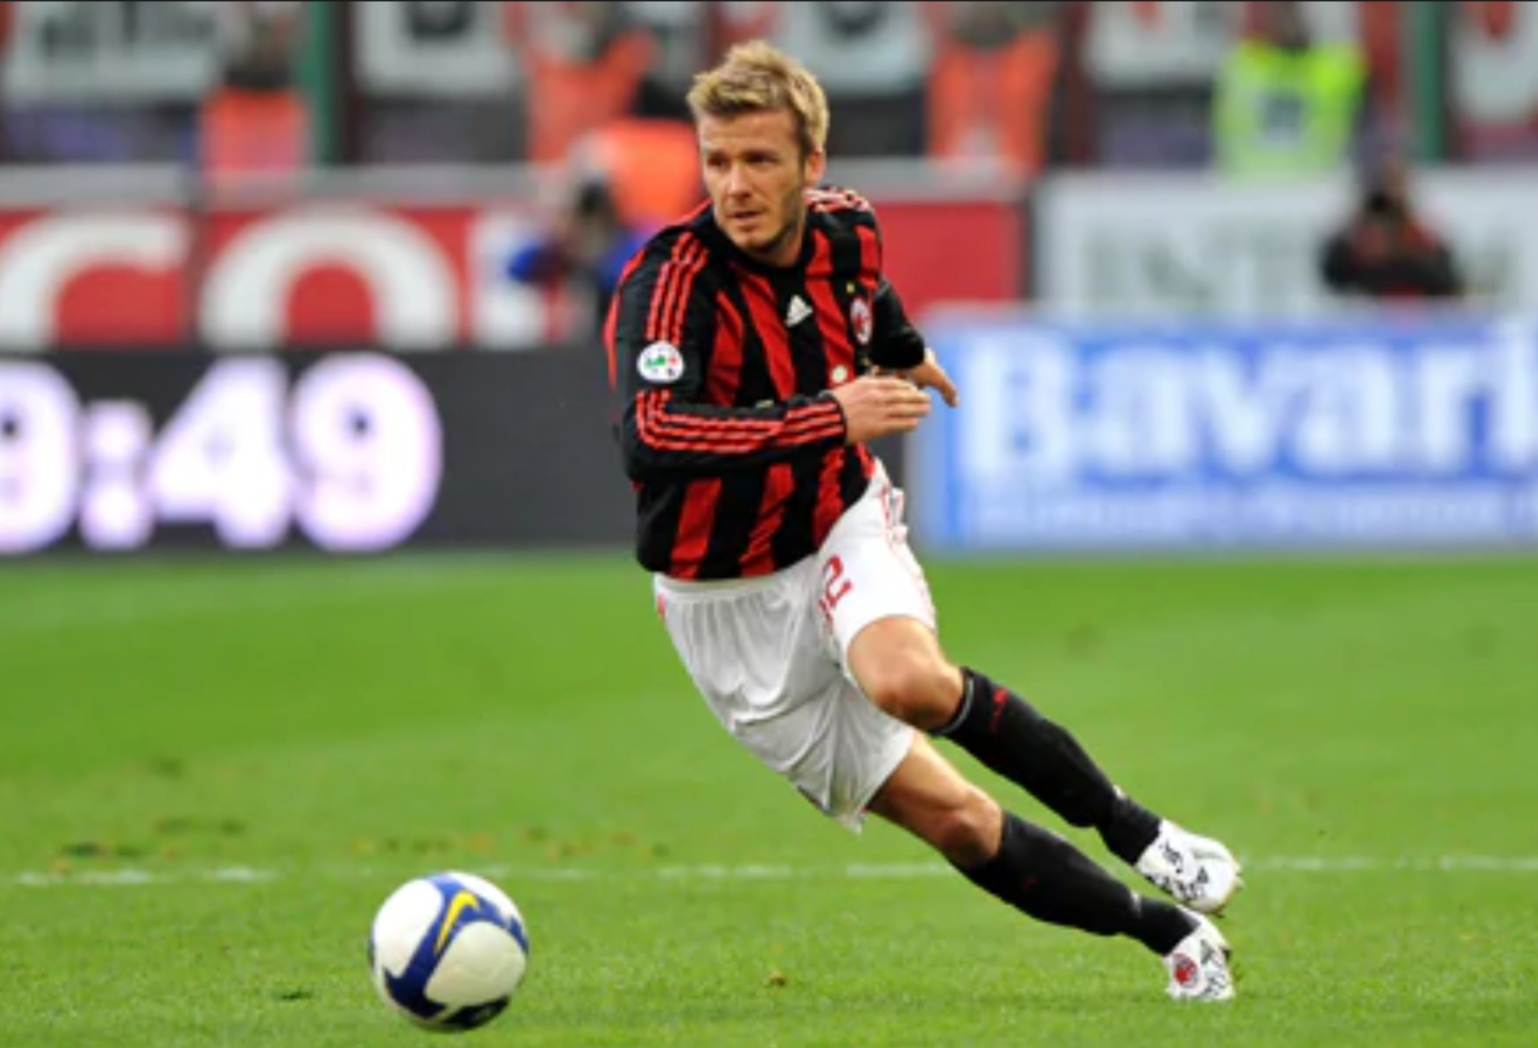 Huge Soccer Fan - I started playing when I was 9 years old, and still enjoy an ol' kickeroo once in a while. To appease my Italian husband, I've recently become a fan of A.C. Milan.